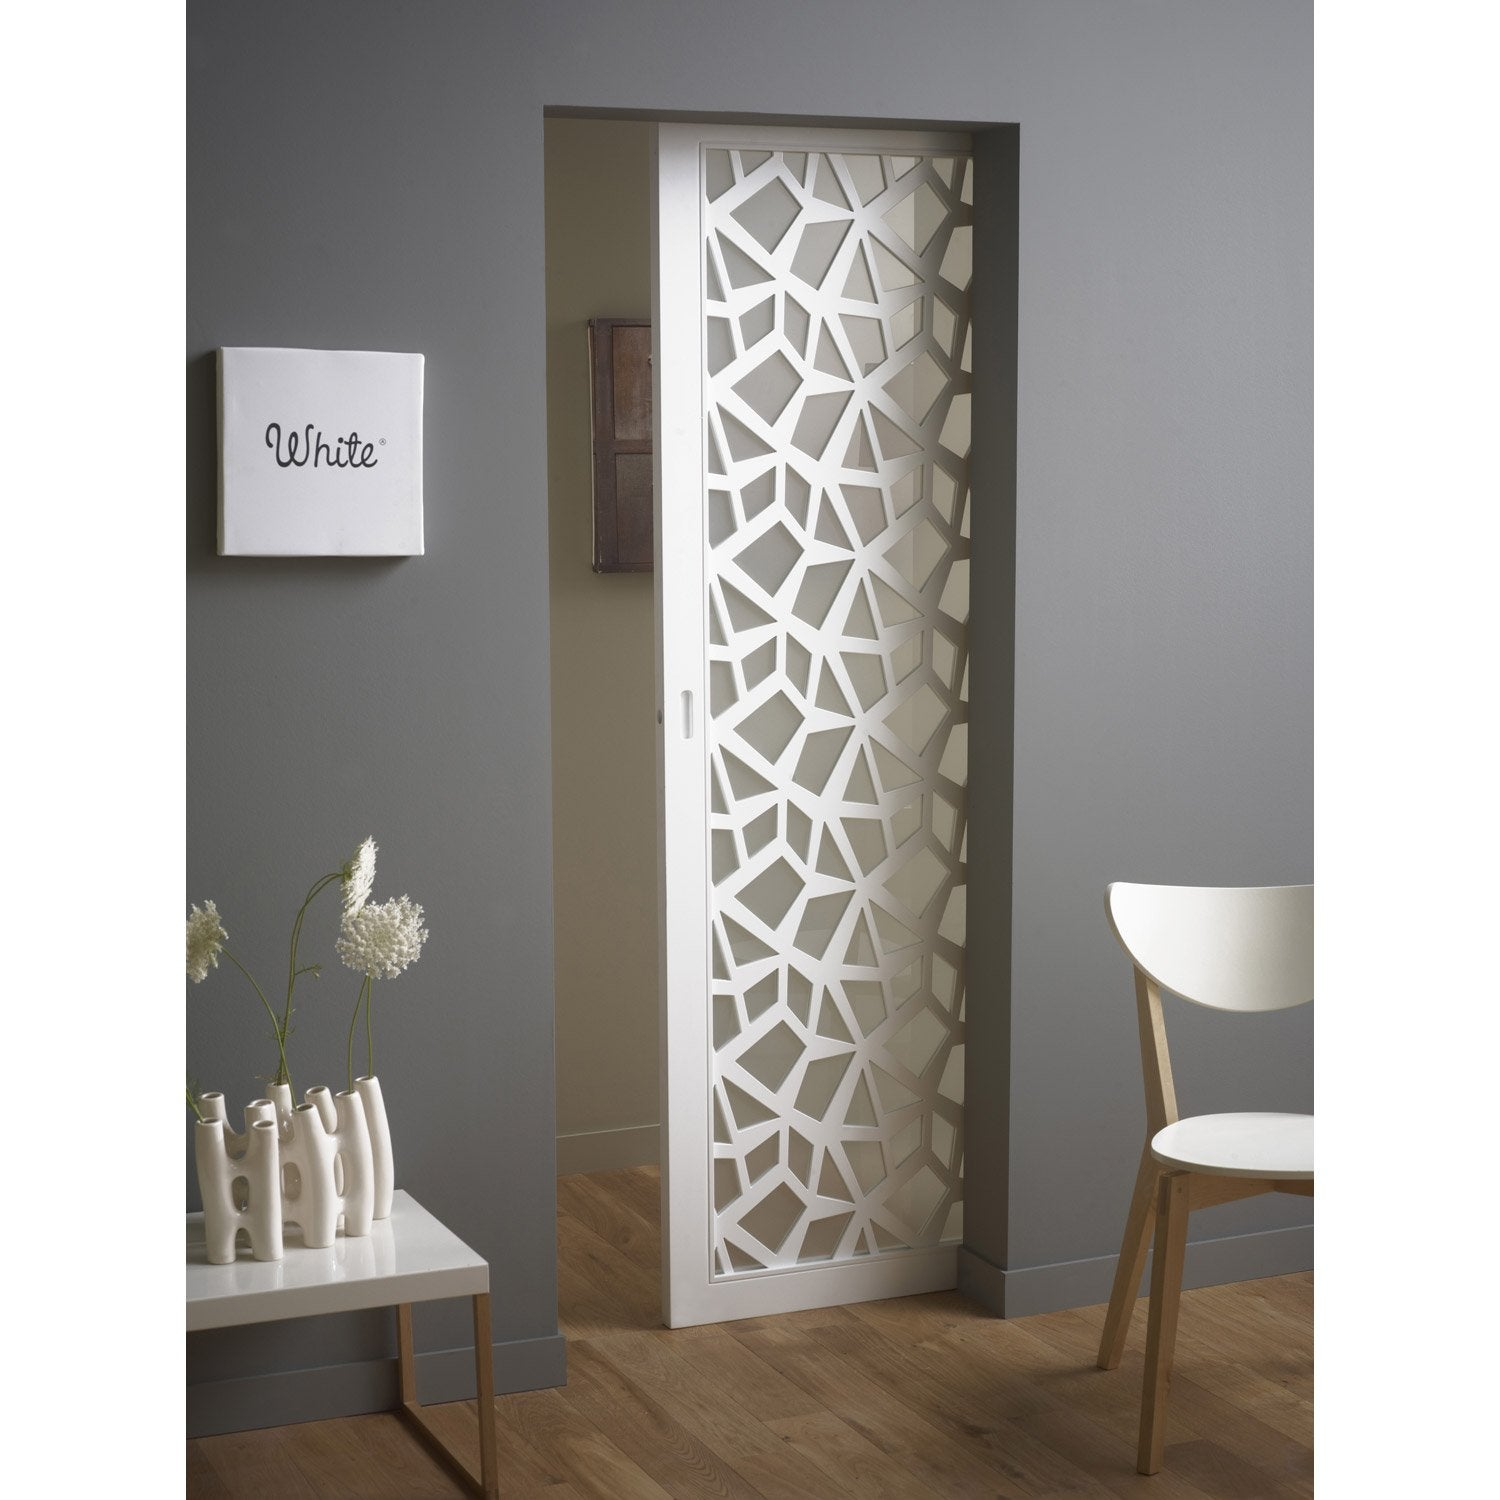 Ensemble porte coulissante crash verre et mdf laqu for Porte coulissante 93 cm